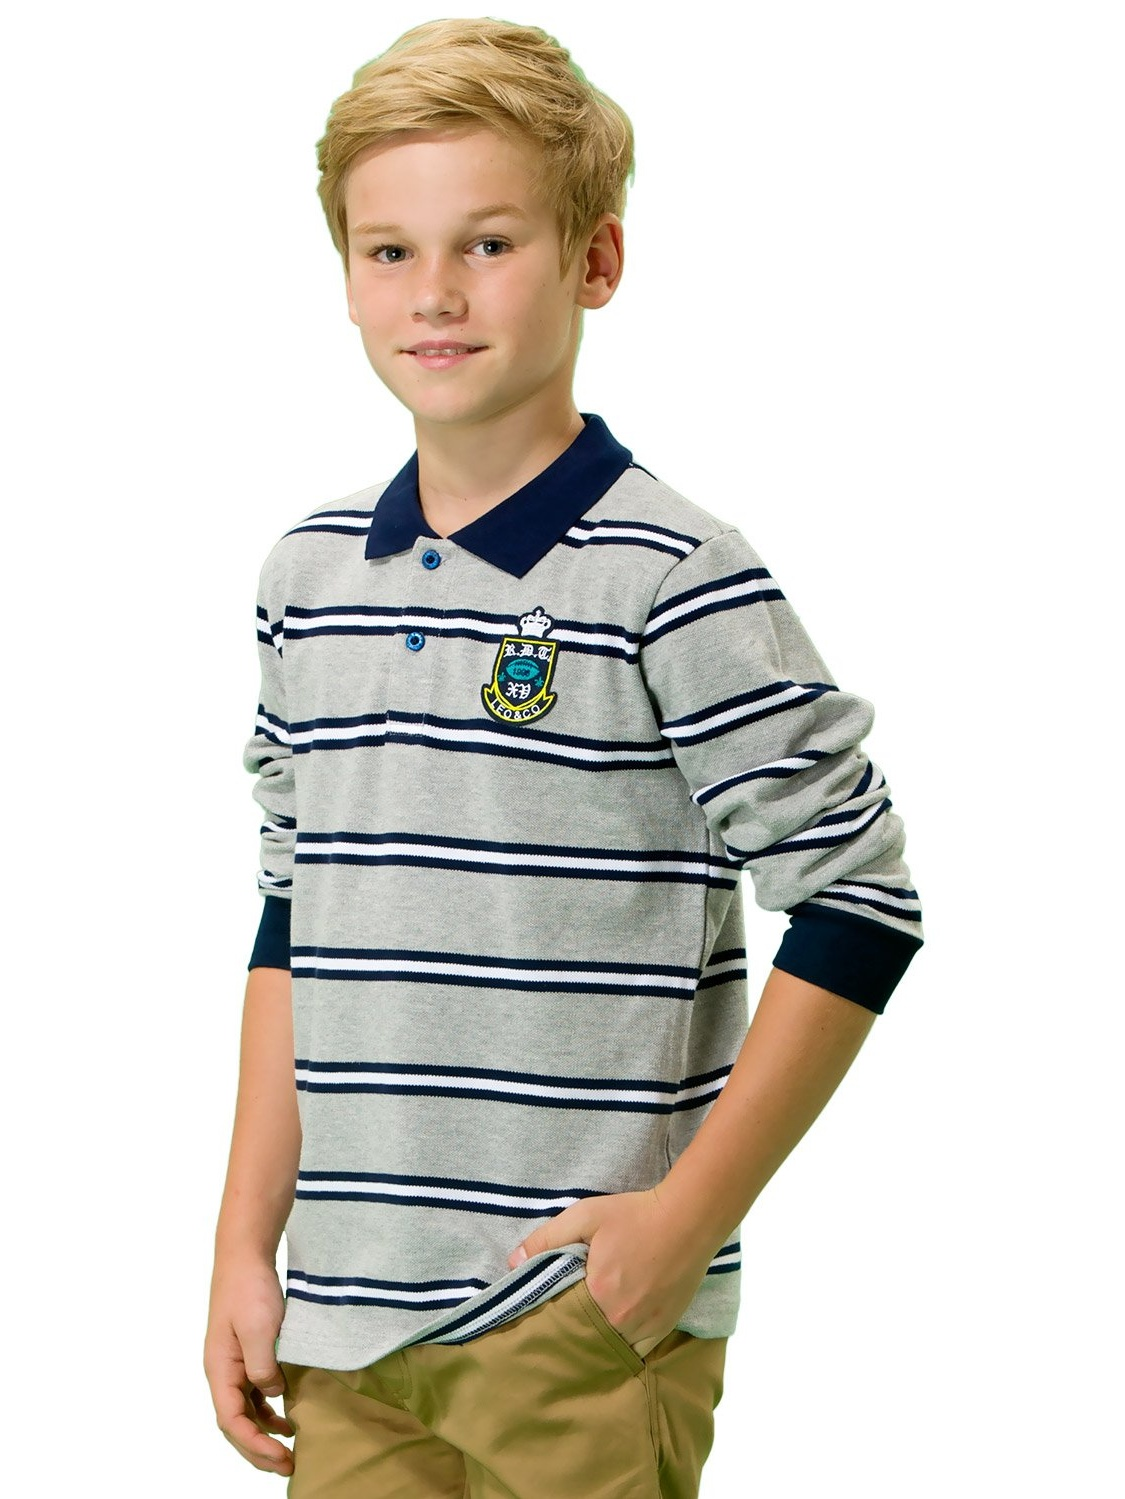 Leo&Lily Big Boys' Kids Long Sleeves Pique Casual Polo Shirts (Melange Stripes, 6)